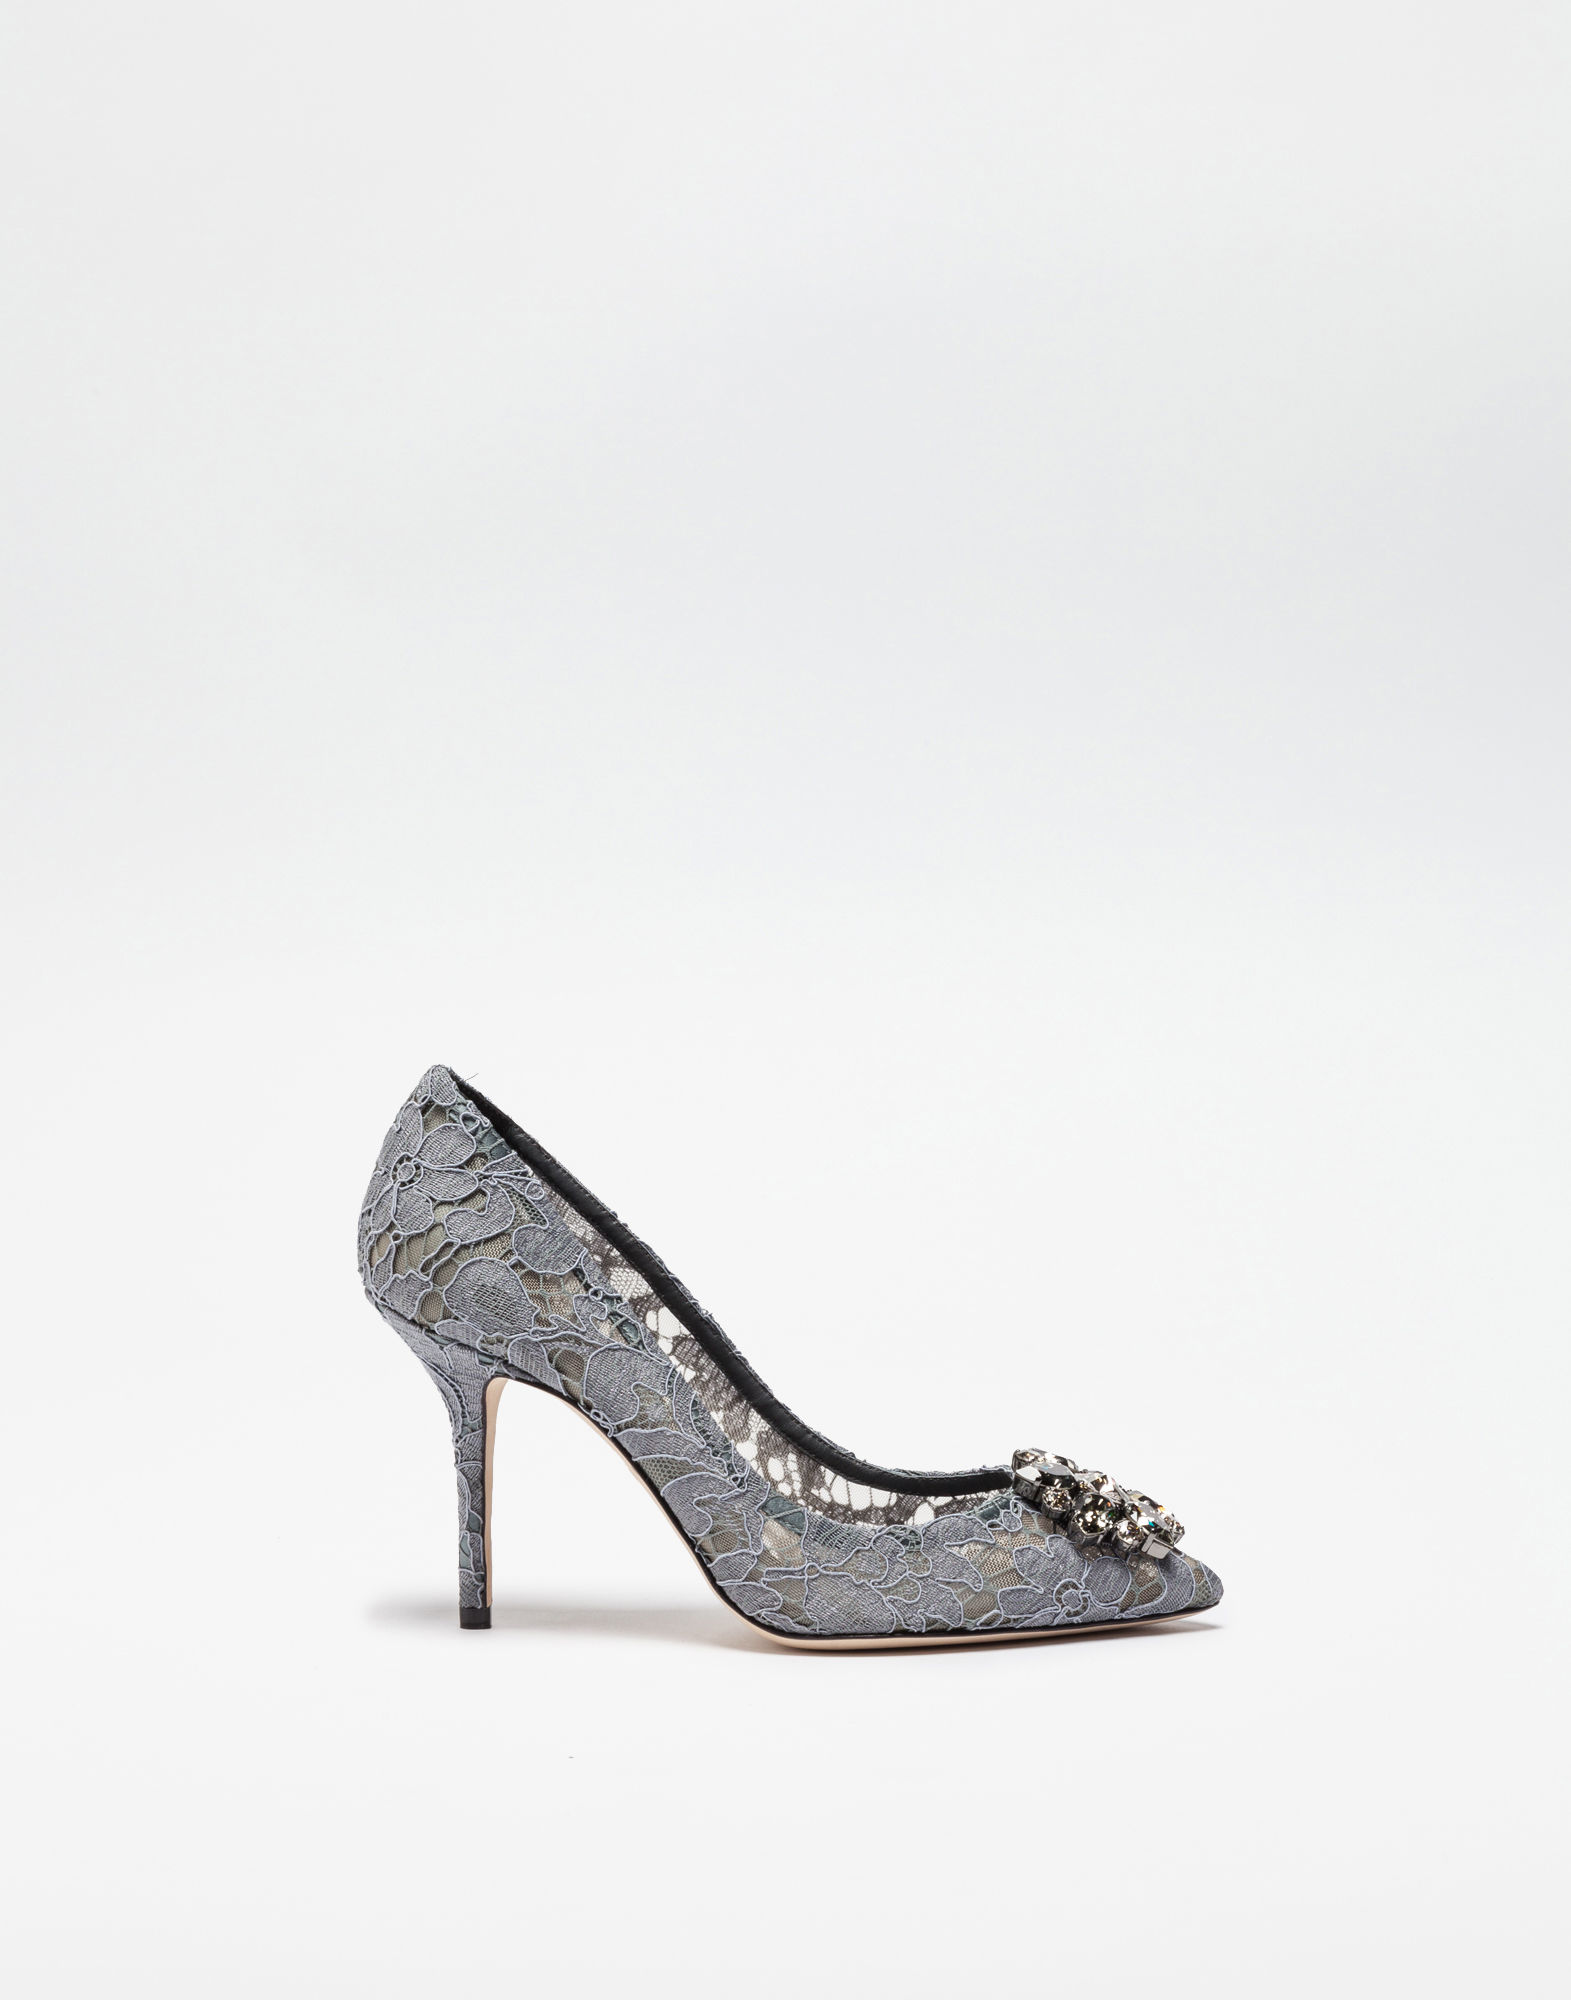 Dolce & Gabbana Belluci Crystal-Embellished Lace Pumps In Grey